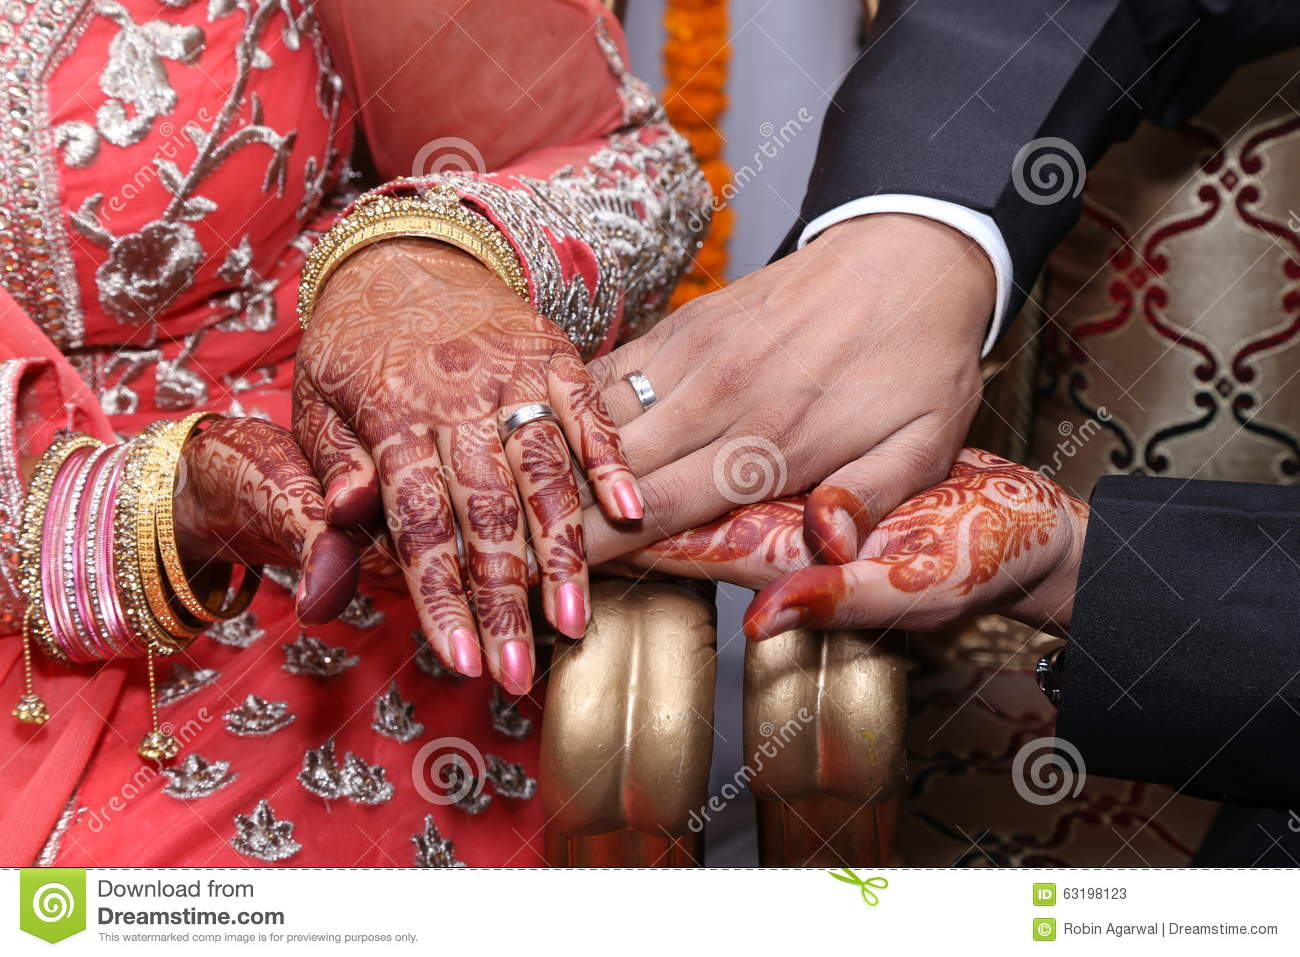 New fashion wedding ring: Hindu wedding ring exchange